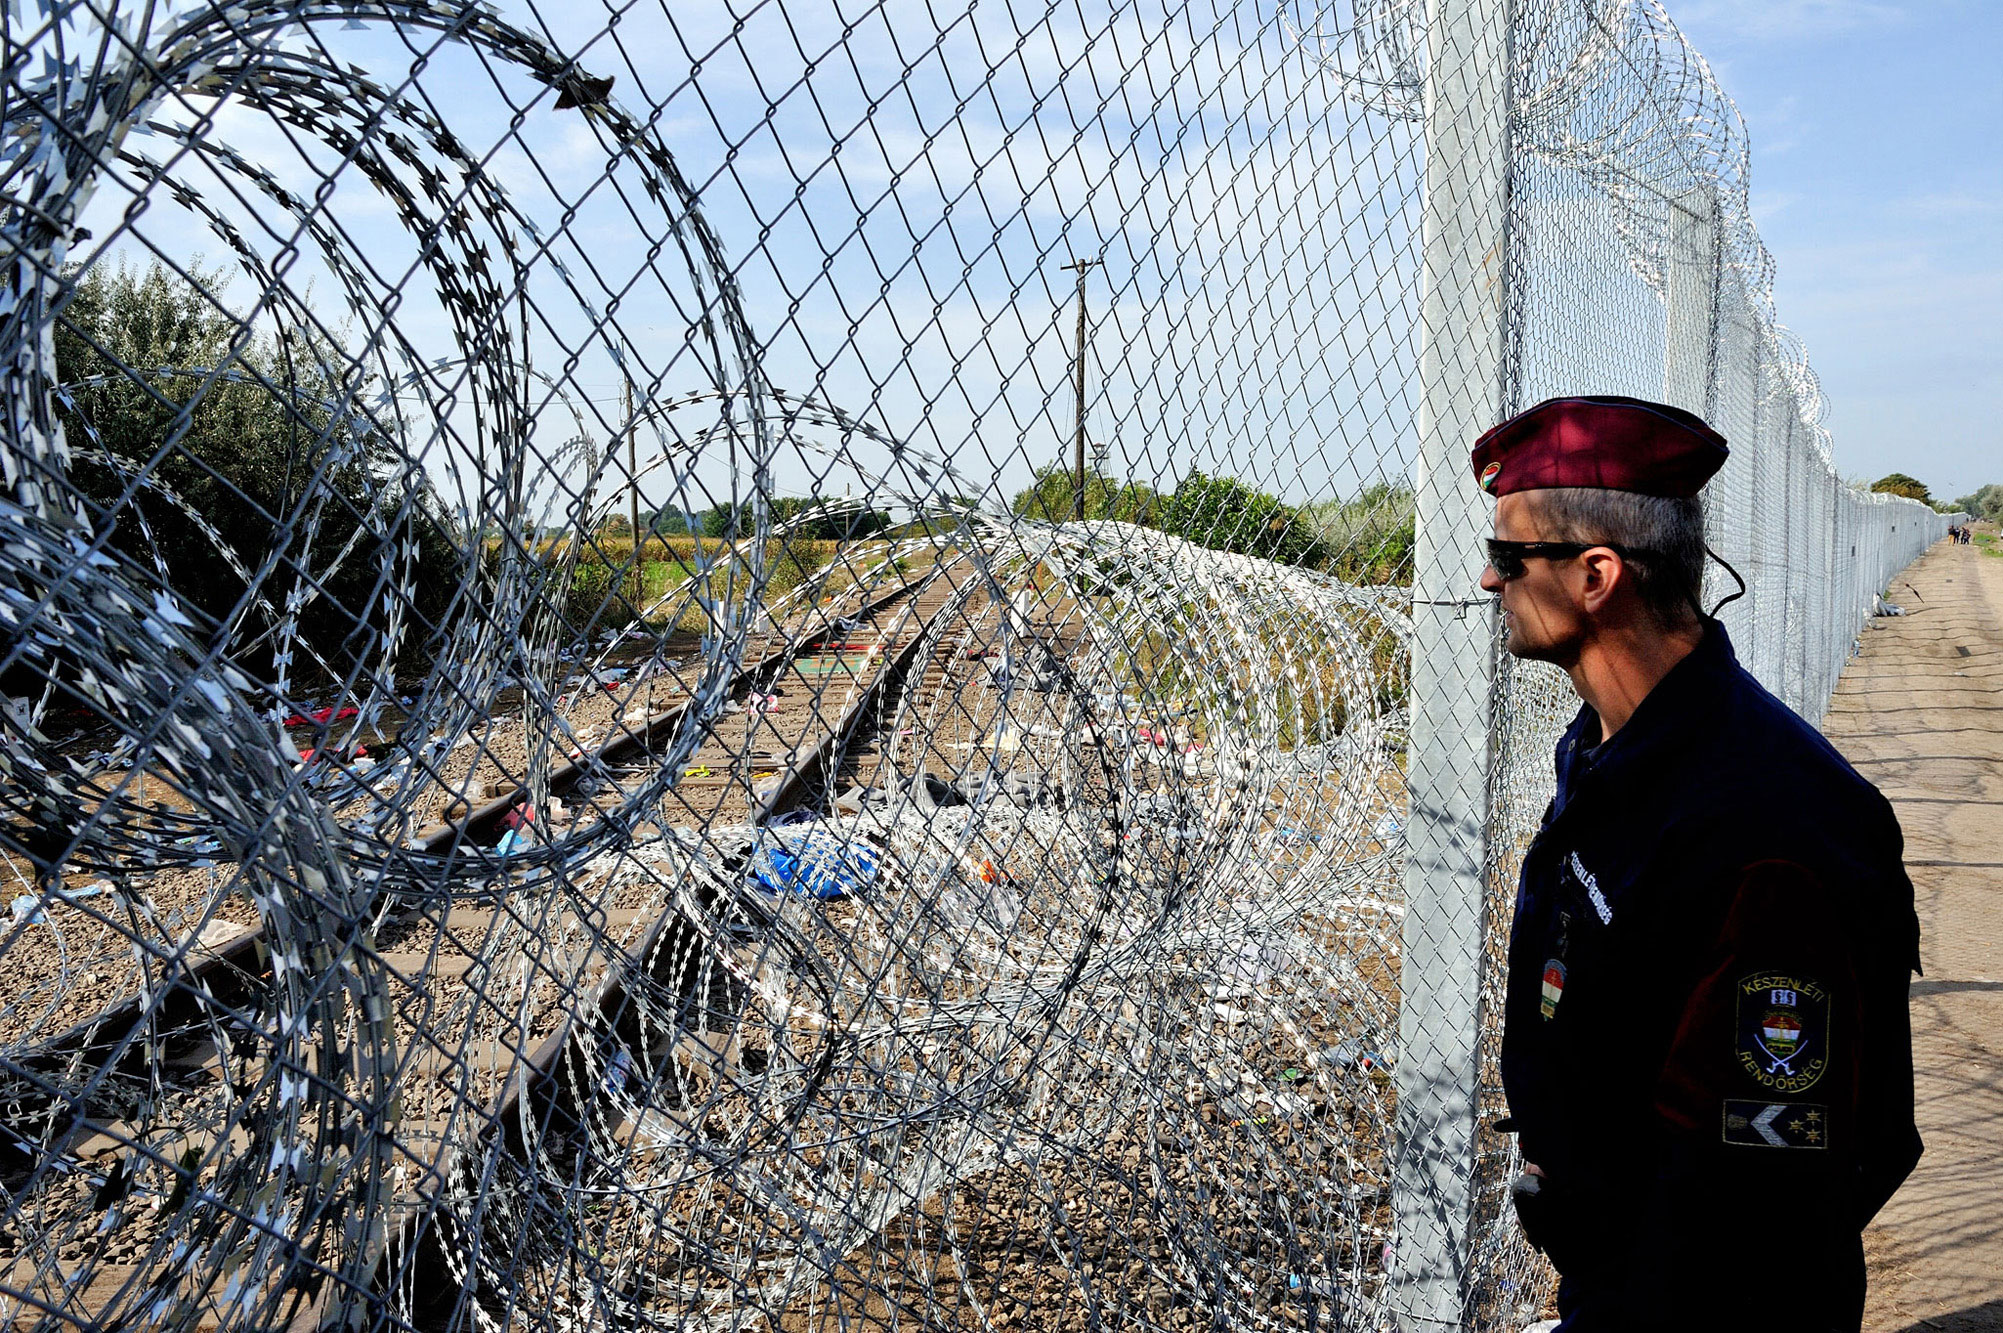 In Hungary, police stand guard at a border fence topped with razor wire aimed at stopping the flow of refugees and locking them out of the European Union. UNHCR/Mark Henley